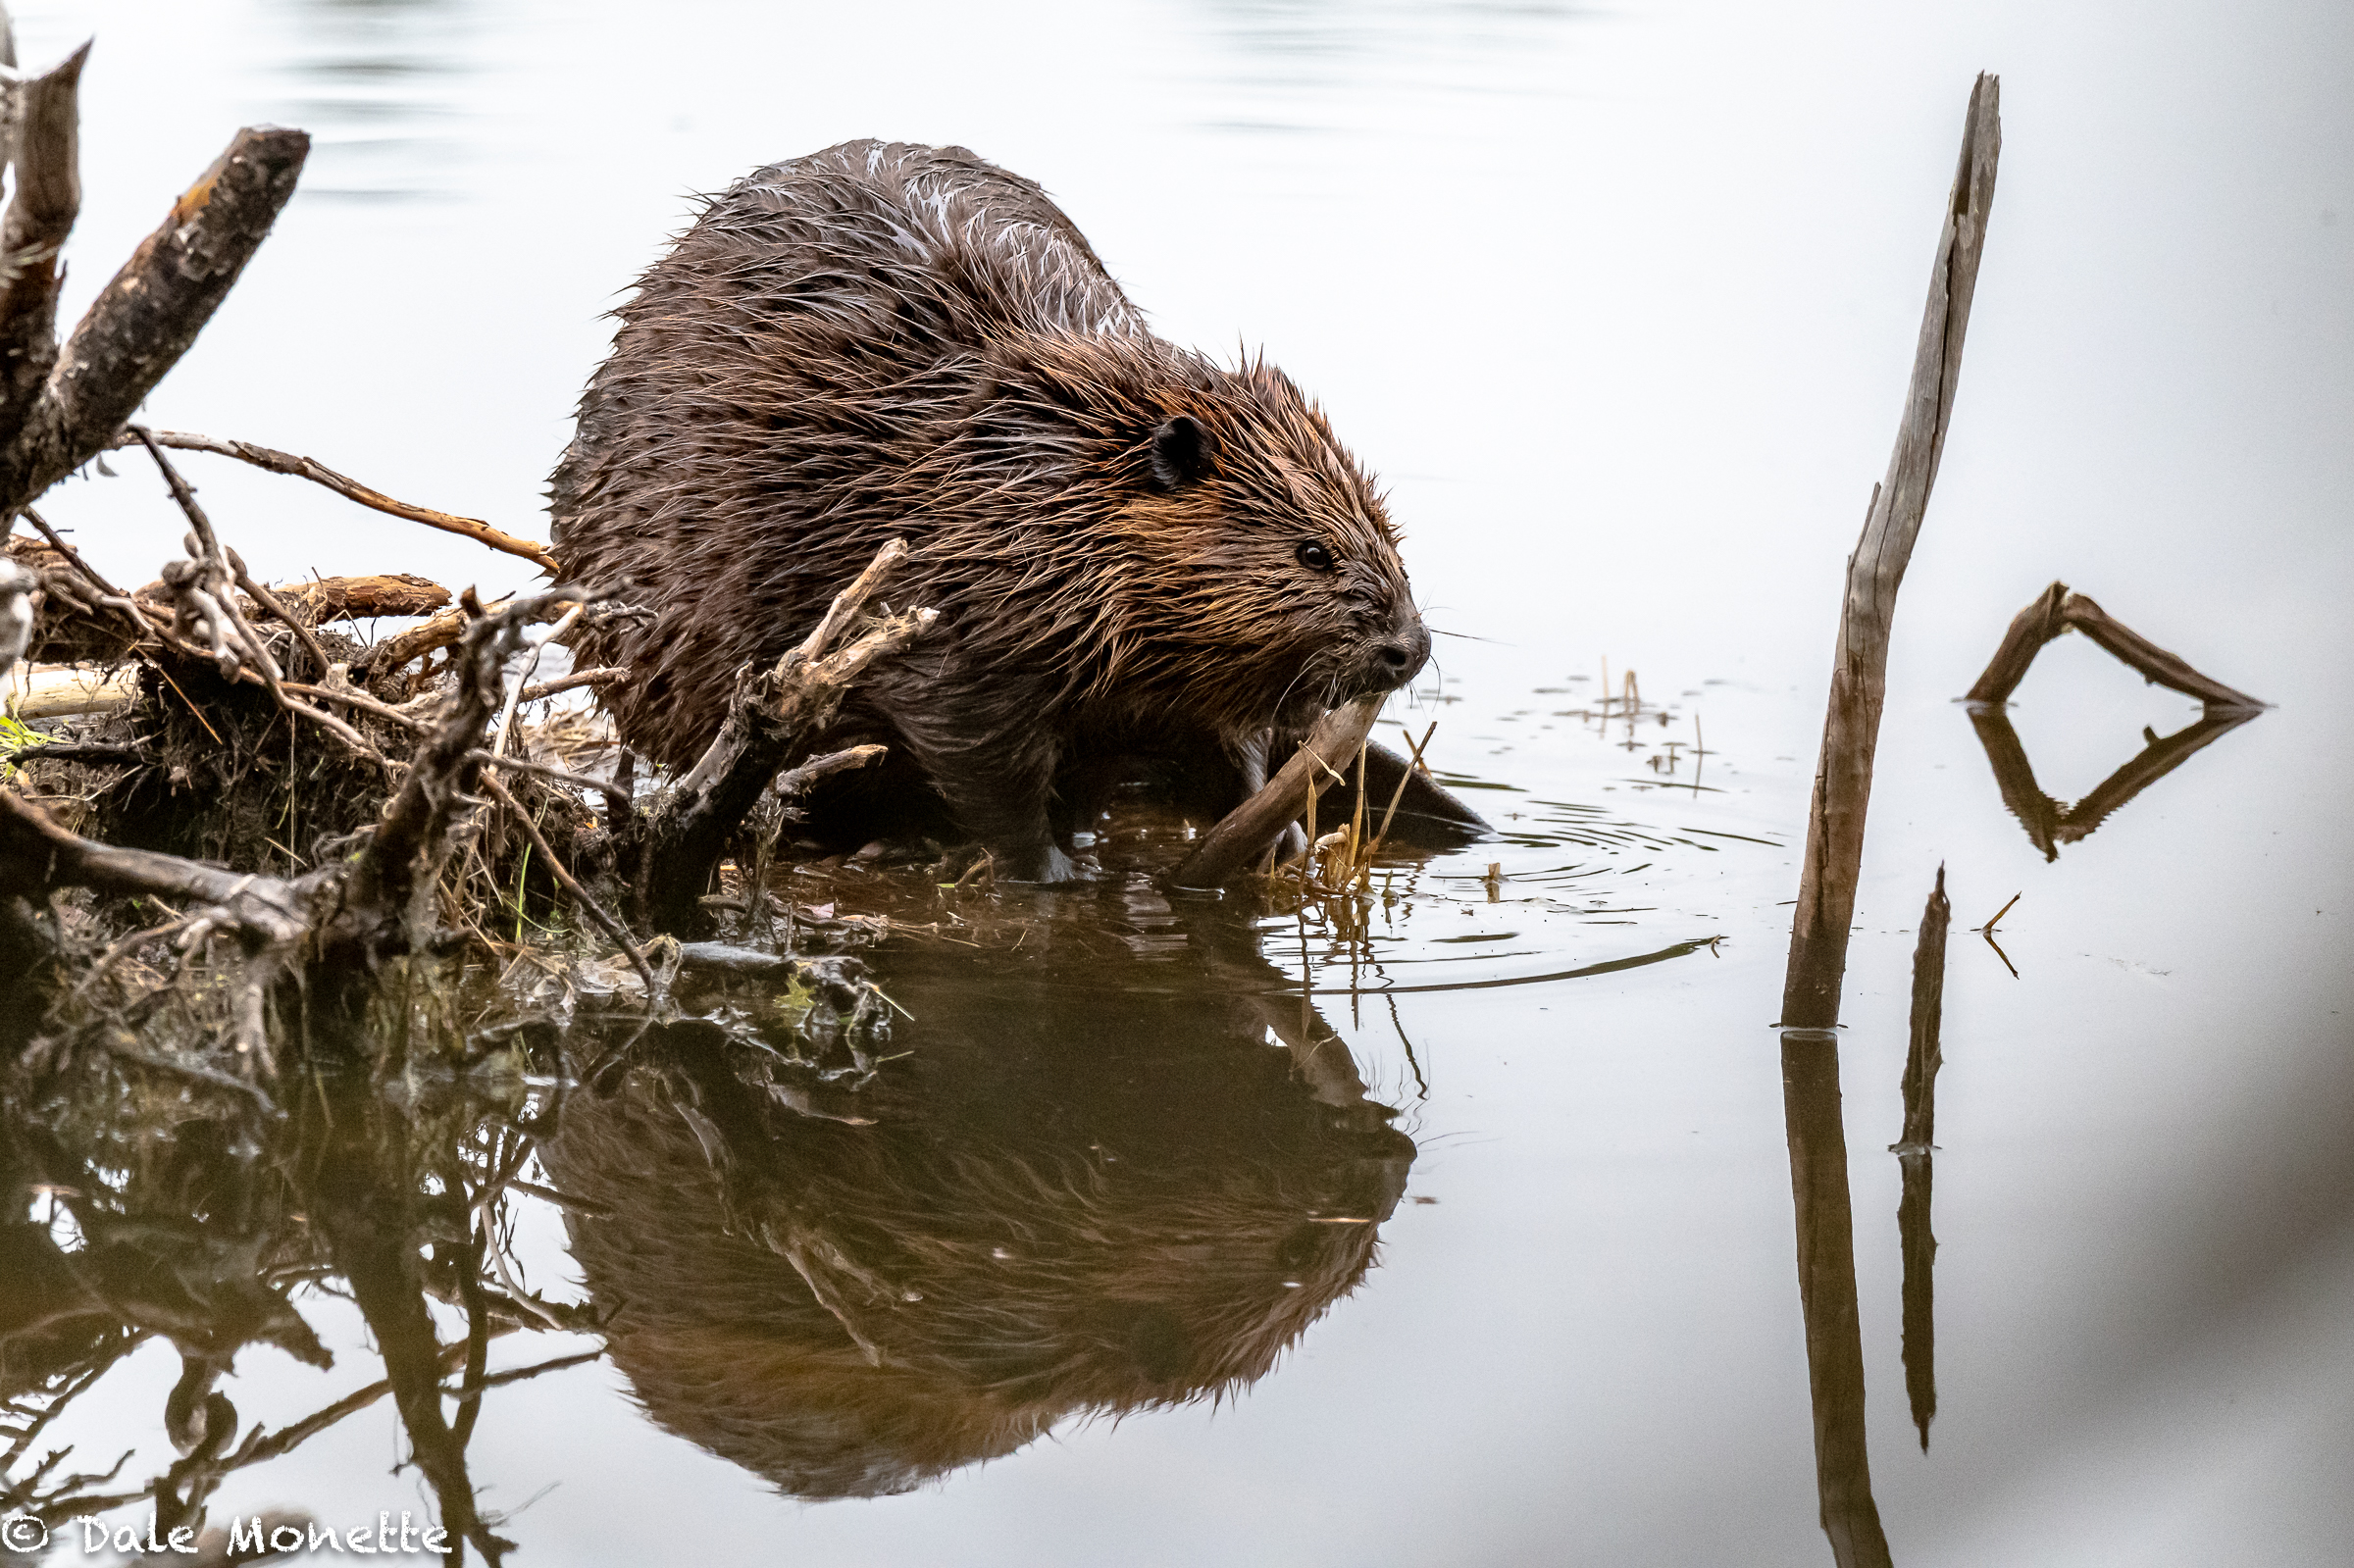 A quick hike in the rain into a favorite beaver pond this morning produced this guy eating a snack before retiring to the lodge today.